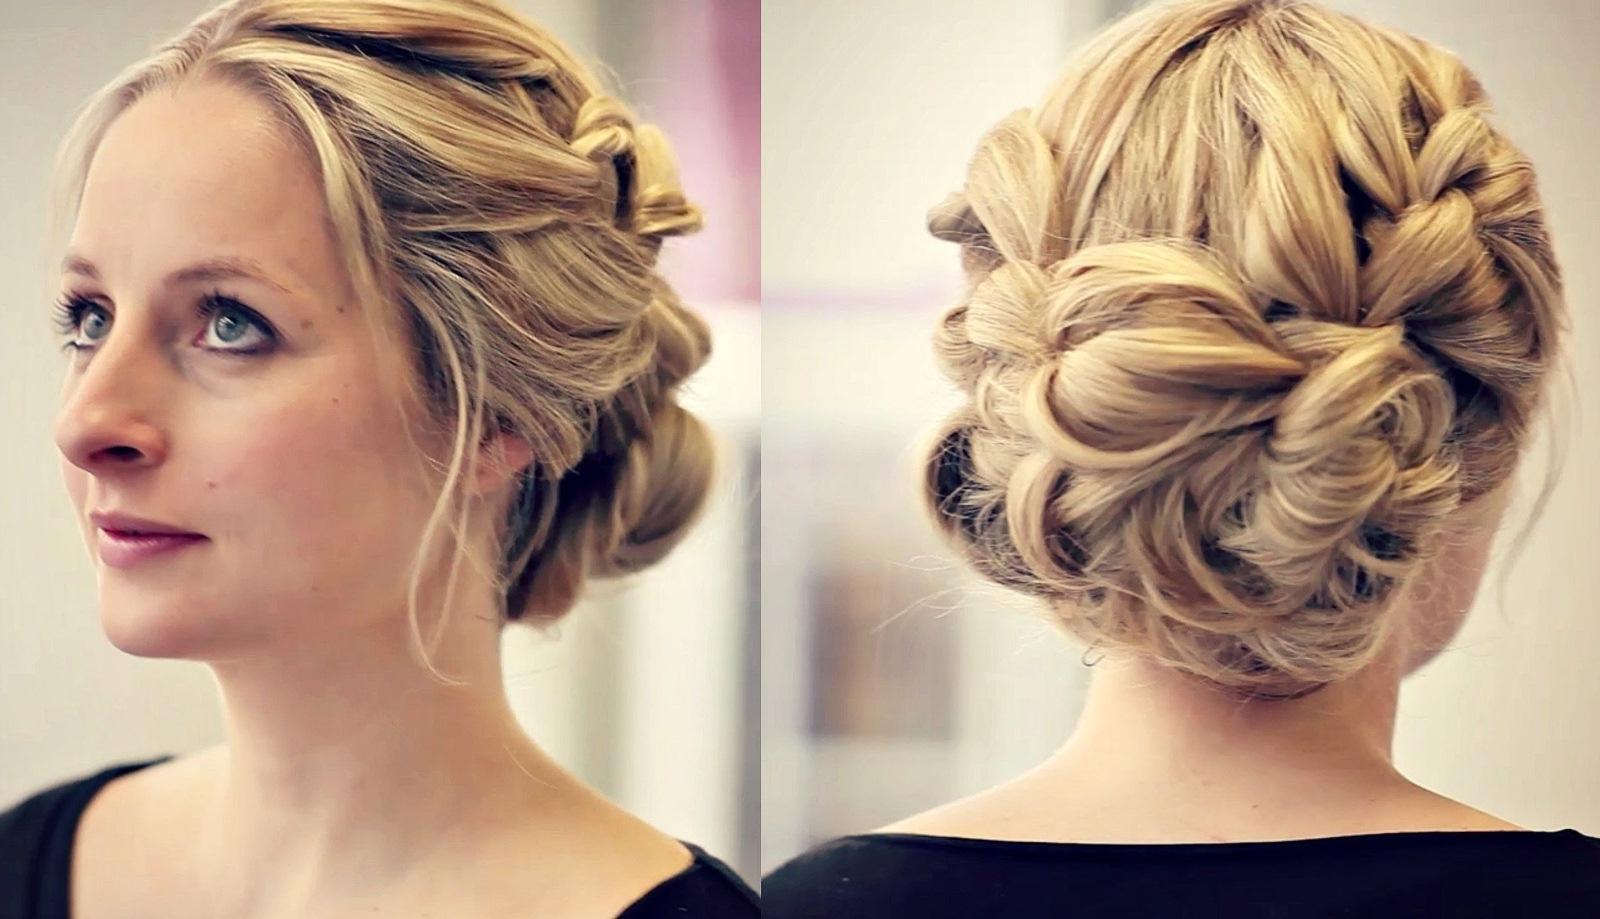 Fashionable Mother Of The Bride Updo Wedding Hairstyles With Updo Hairstyles For Weddings Mother Of The Bride – Hairstyle For (View 4 of 15)